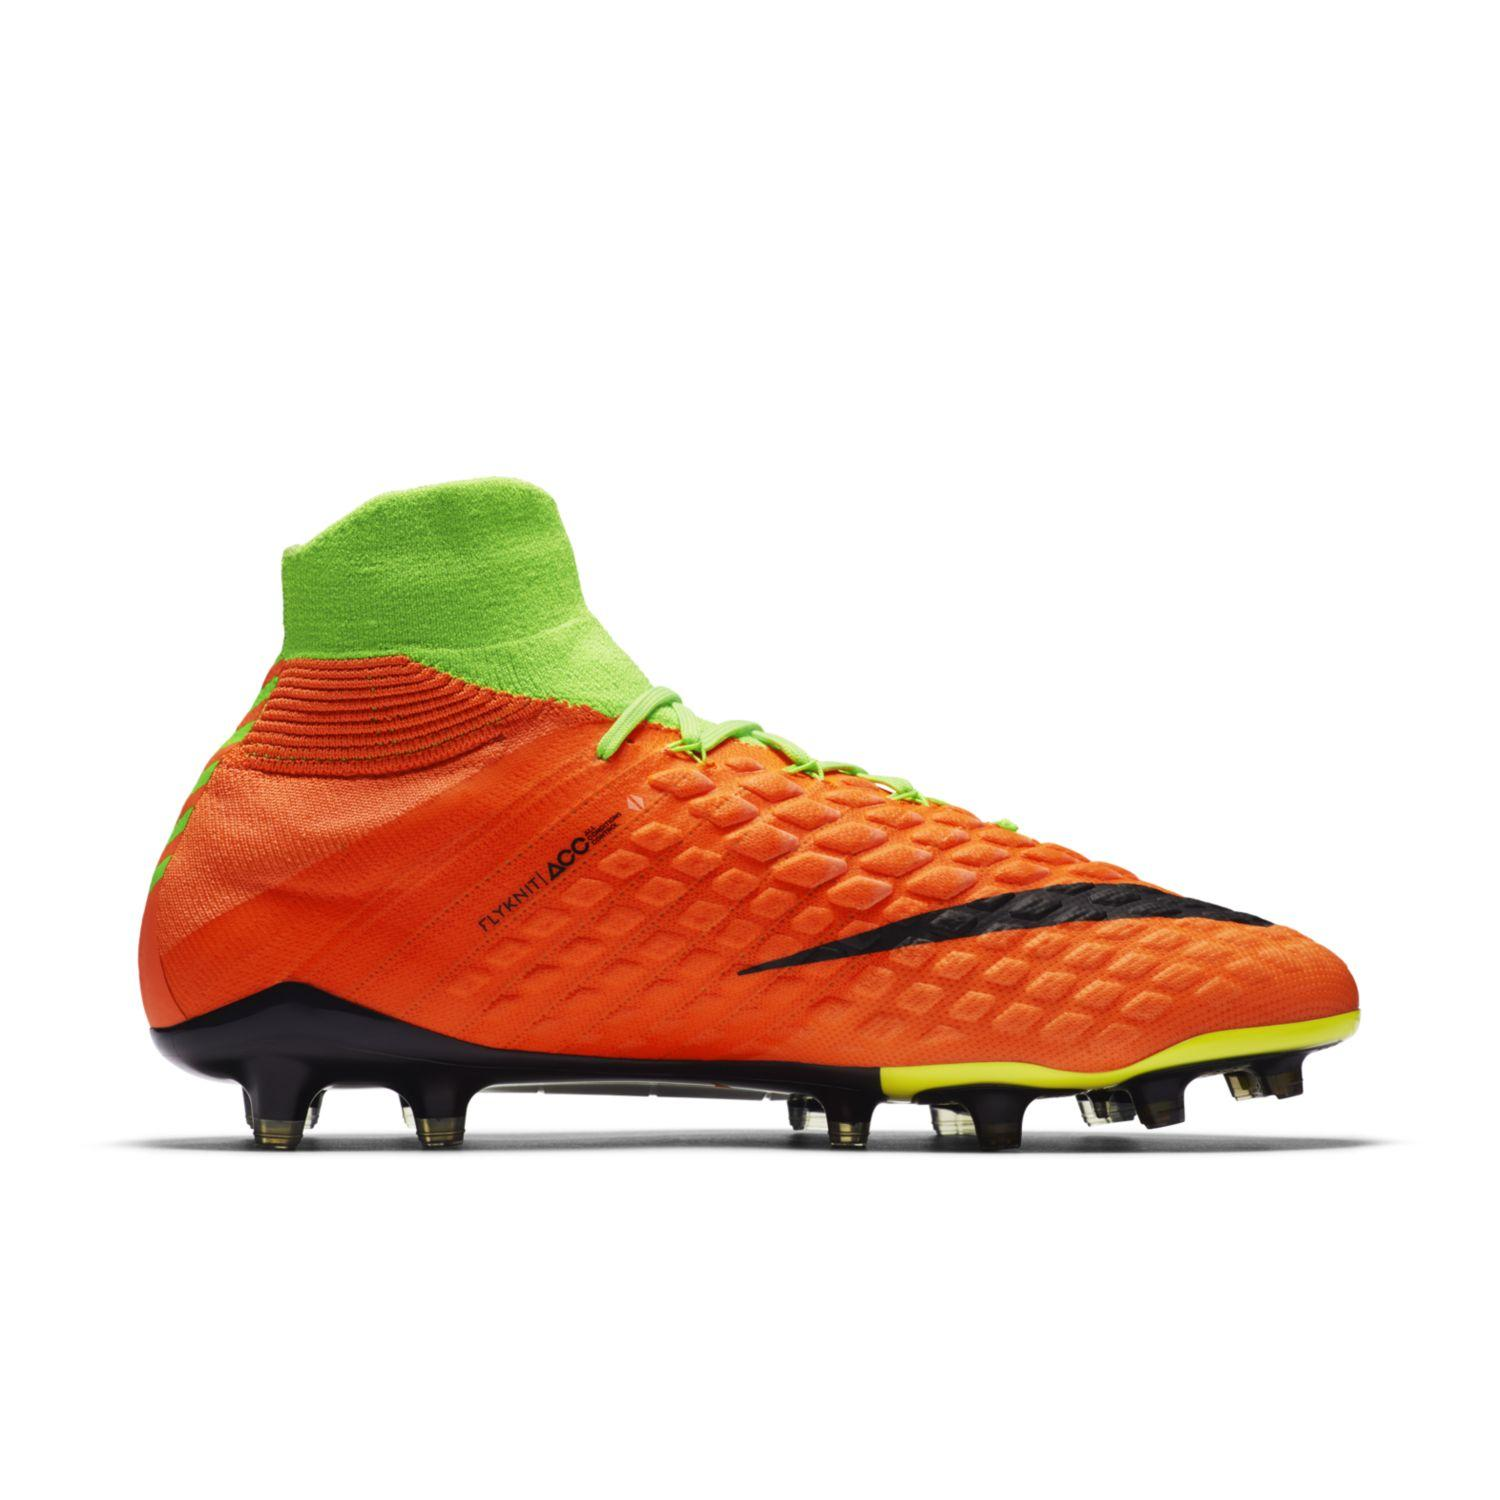 Nike Chaussures De Football Hypervenom Phantom Iii Dynamic Fit Fg